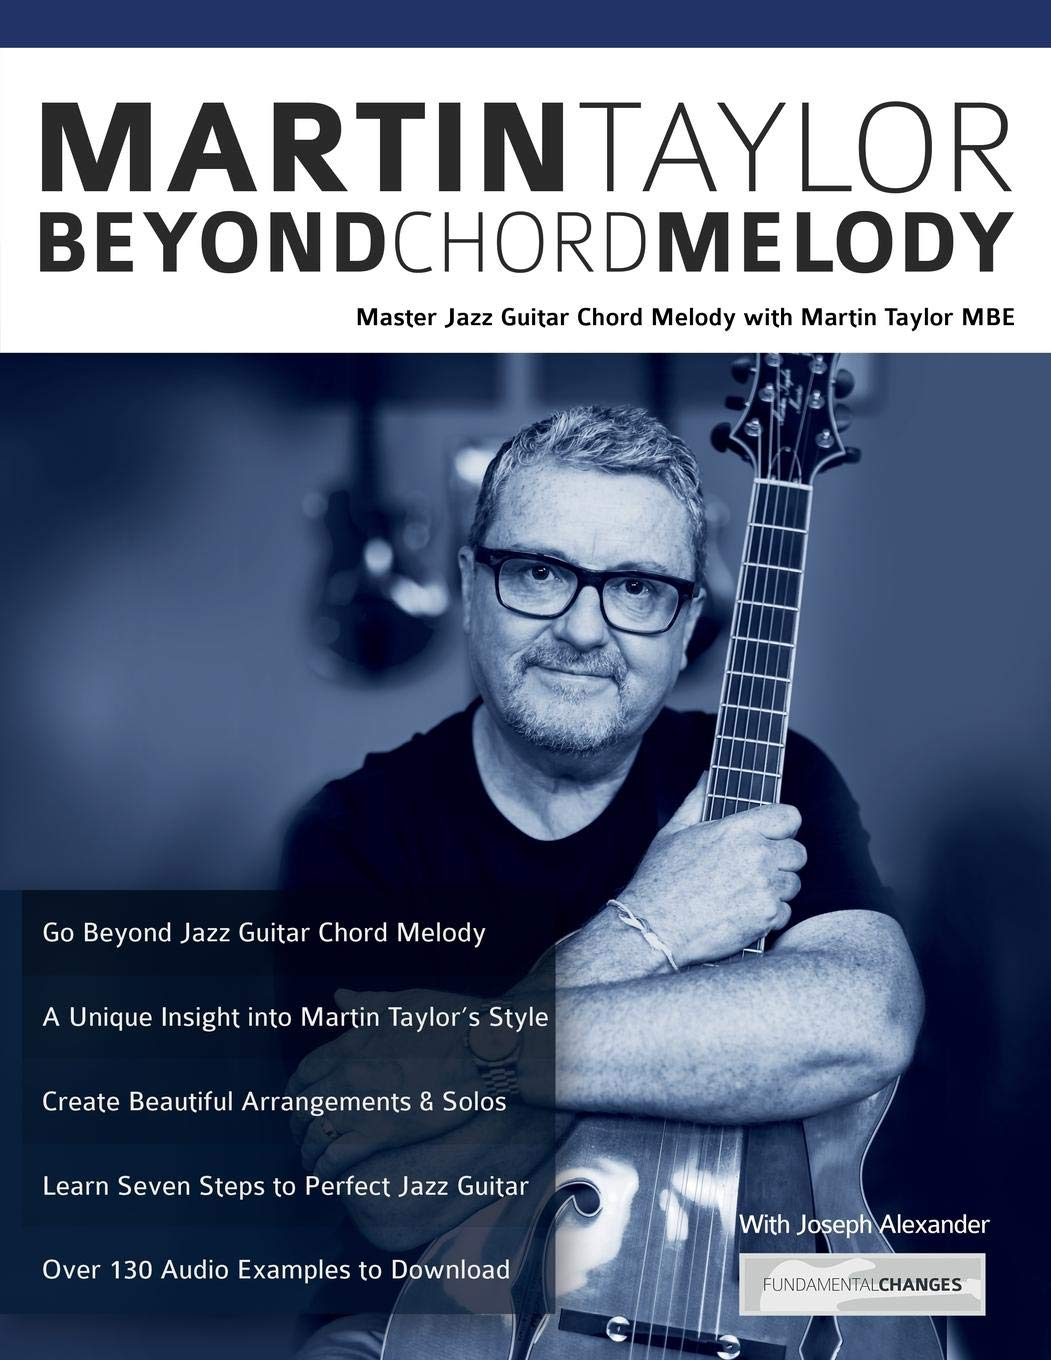 Martin Taylor Beyond Chord Melody Master Jazz Guitar The Secret Teacher Dounloadable Courses For Beginners With Virtuoso Mbe Joseph Alexander 9781911267829